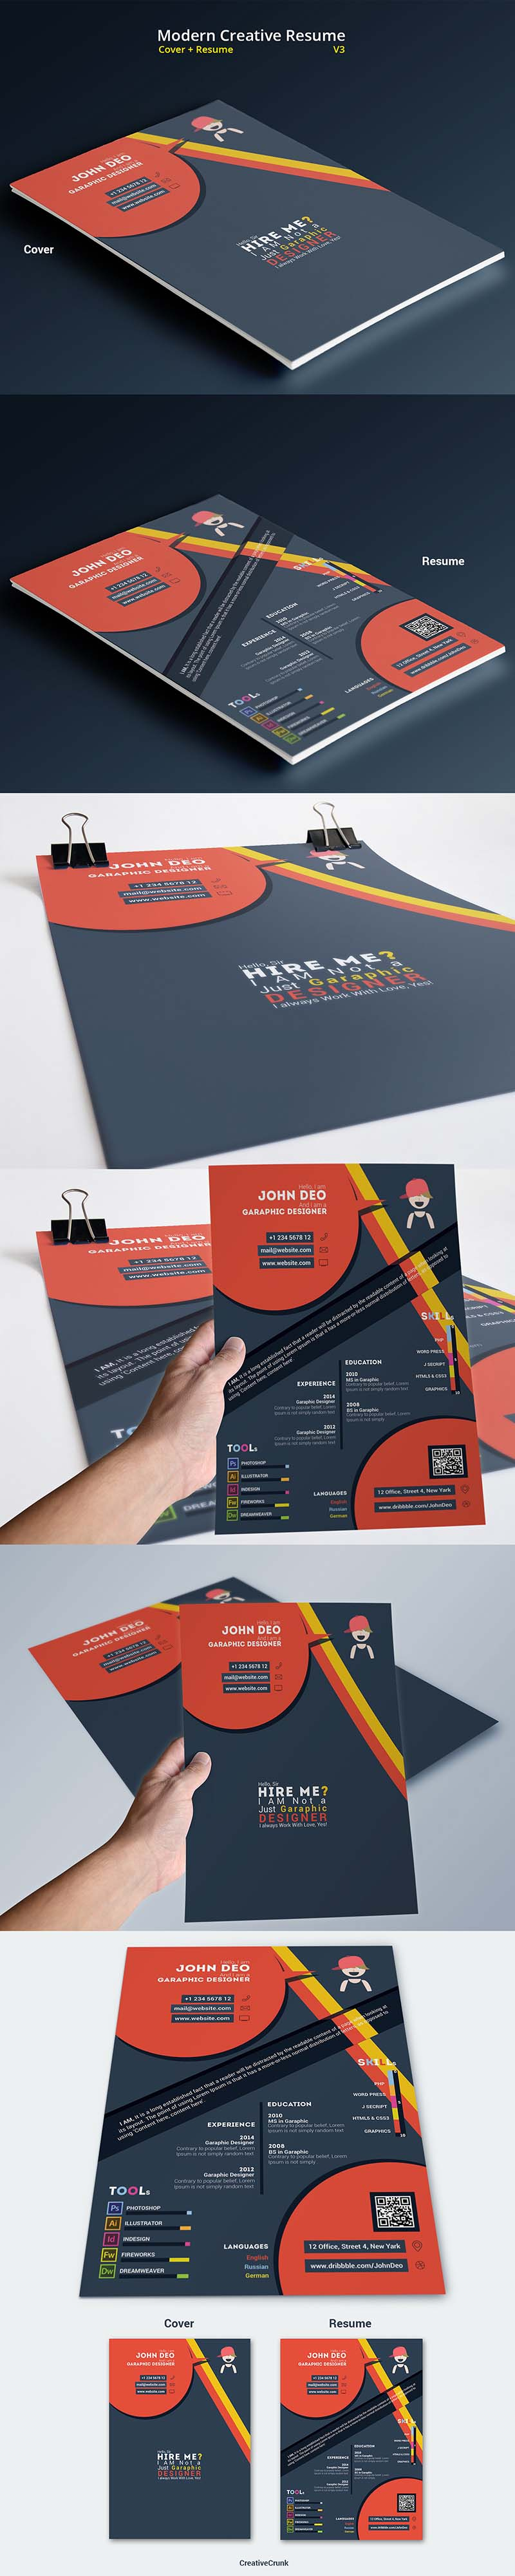 Free Modern Resume-CV Template Design For Creative Designers